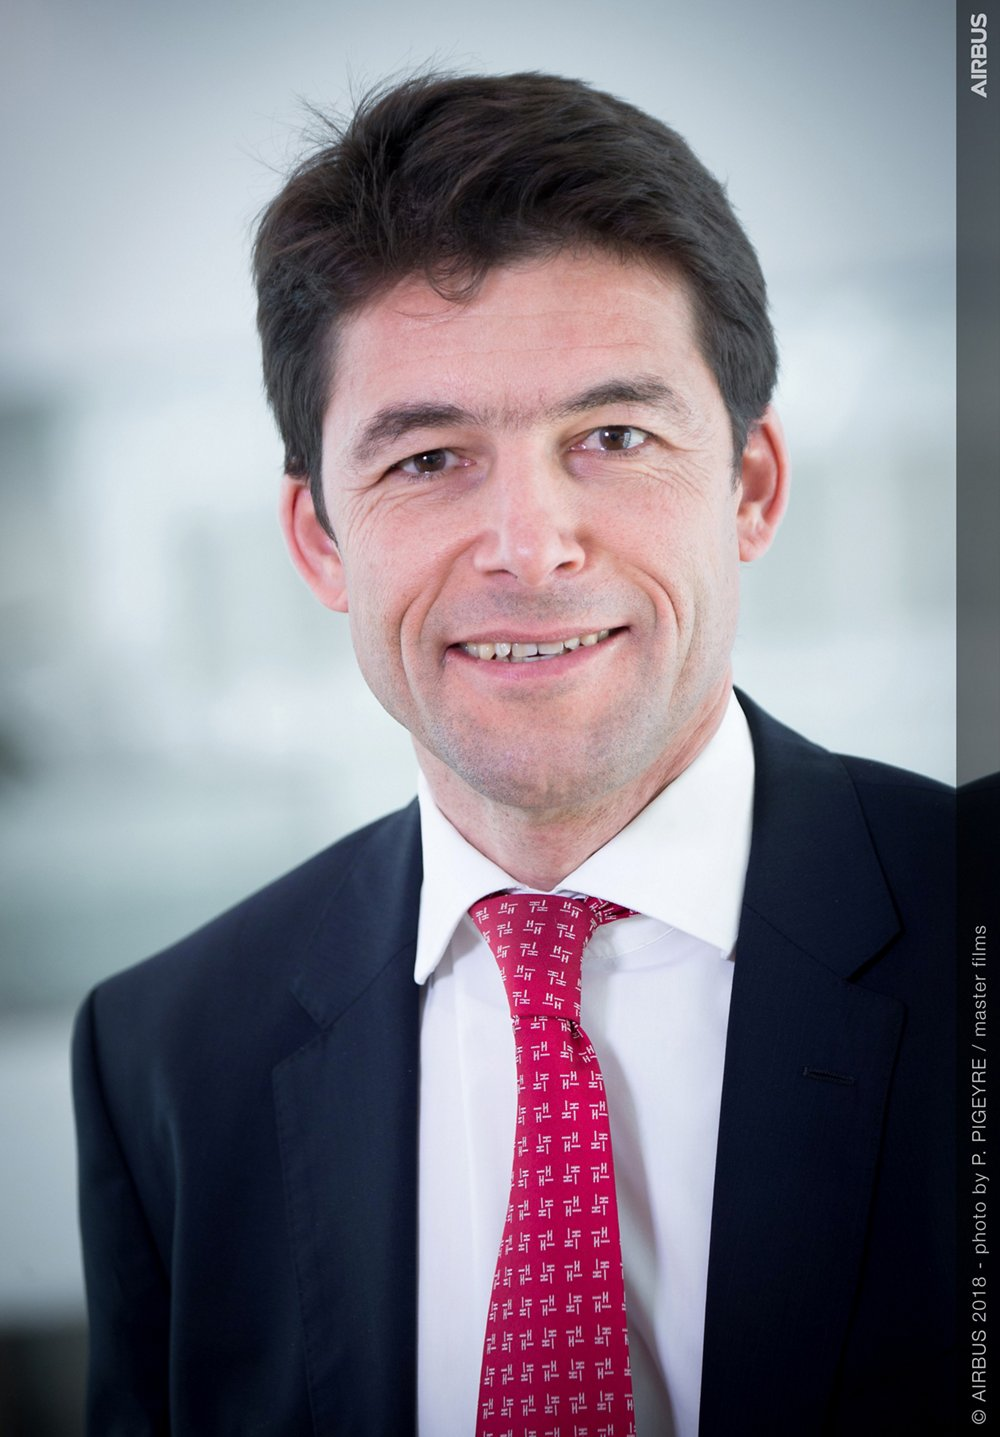 Photo of Bruno Even, Airbus' Chief Executive Officer and a member of its Executive Committee.